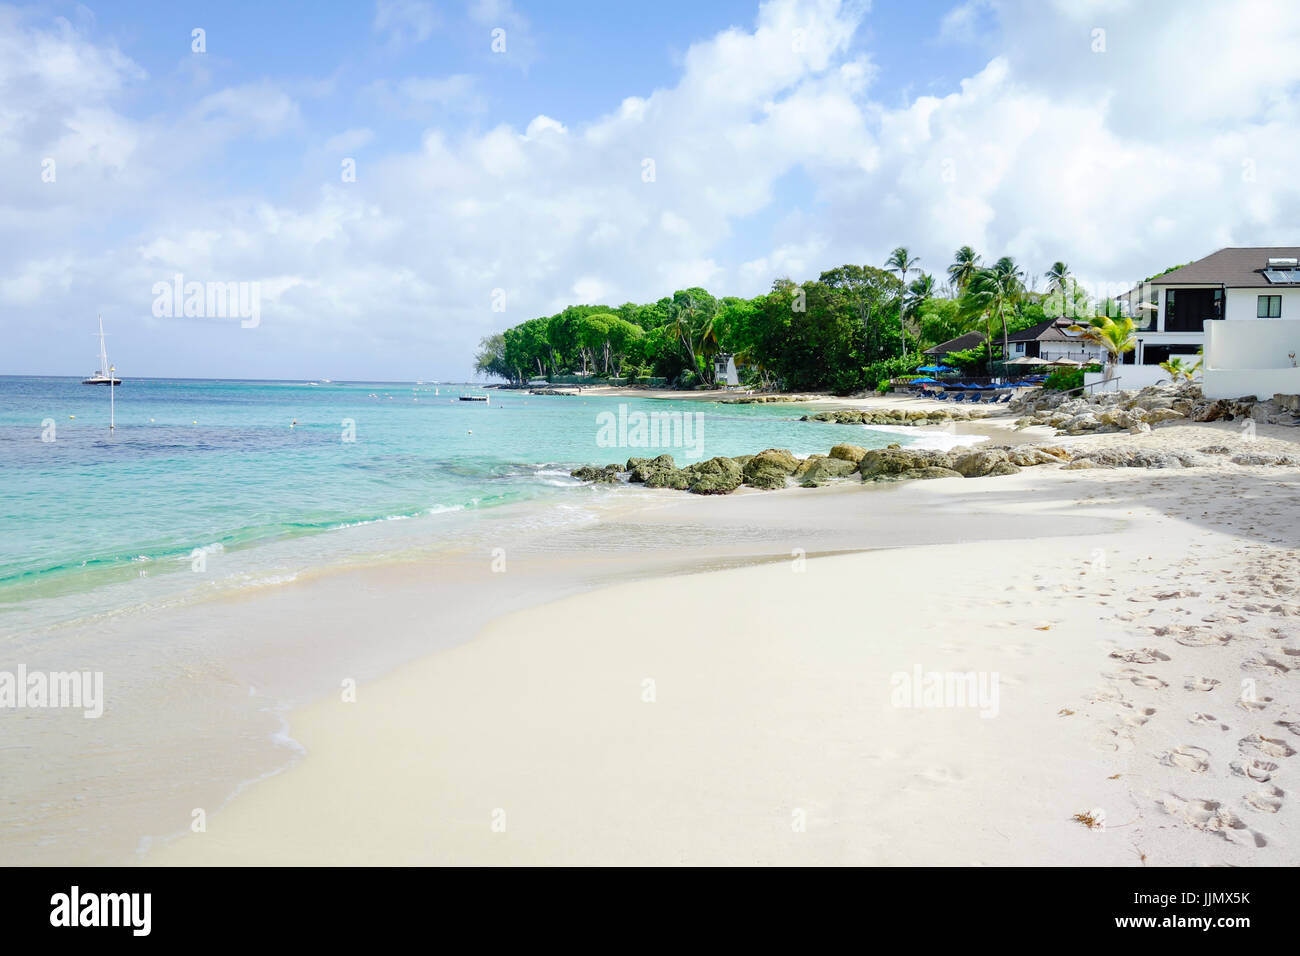 Beach and Coastline, Holetown, Barbados, West Indies - Stock Image